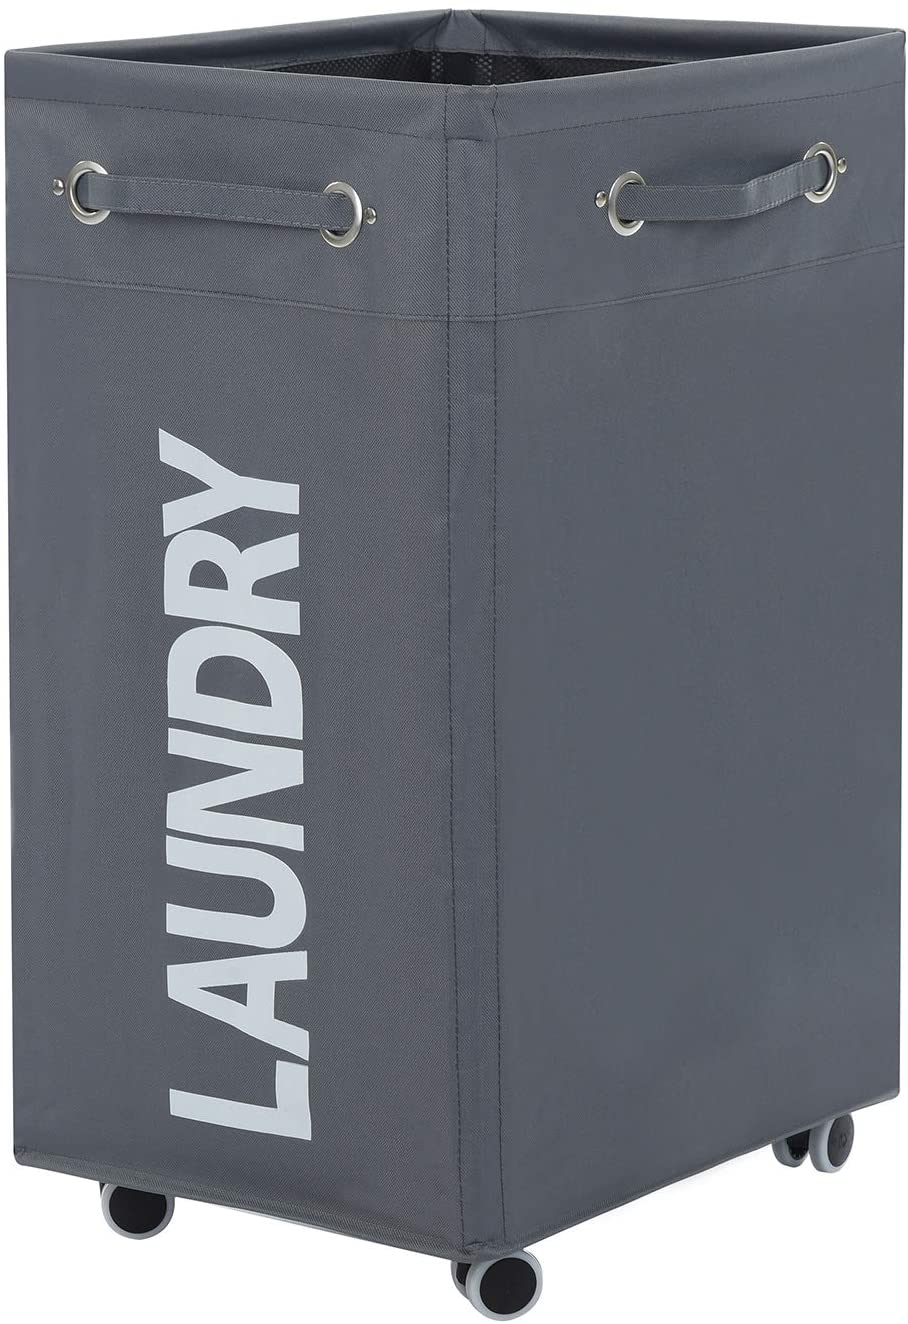 Haundry 85.8L Large Collapsible Laundry Hamper with Wheels, Waterproof Rolling Clothes Hamper Basket Bin for Dirty Clothes Storage